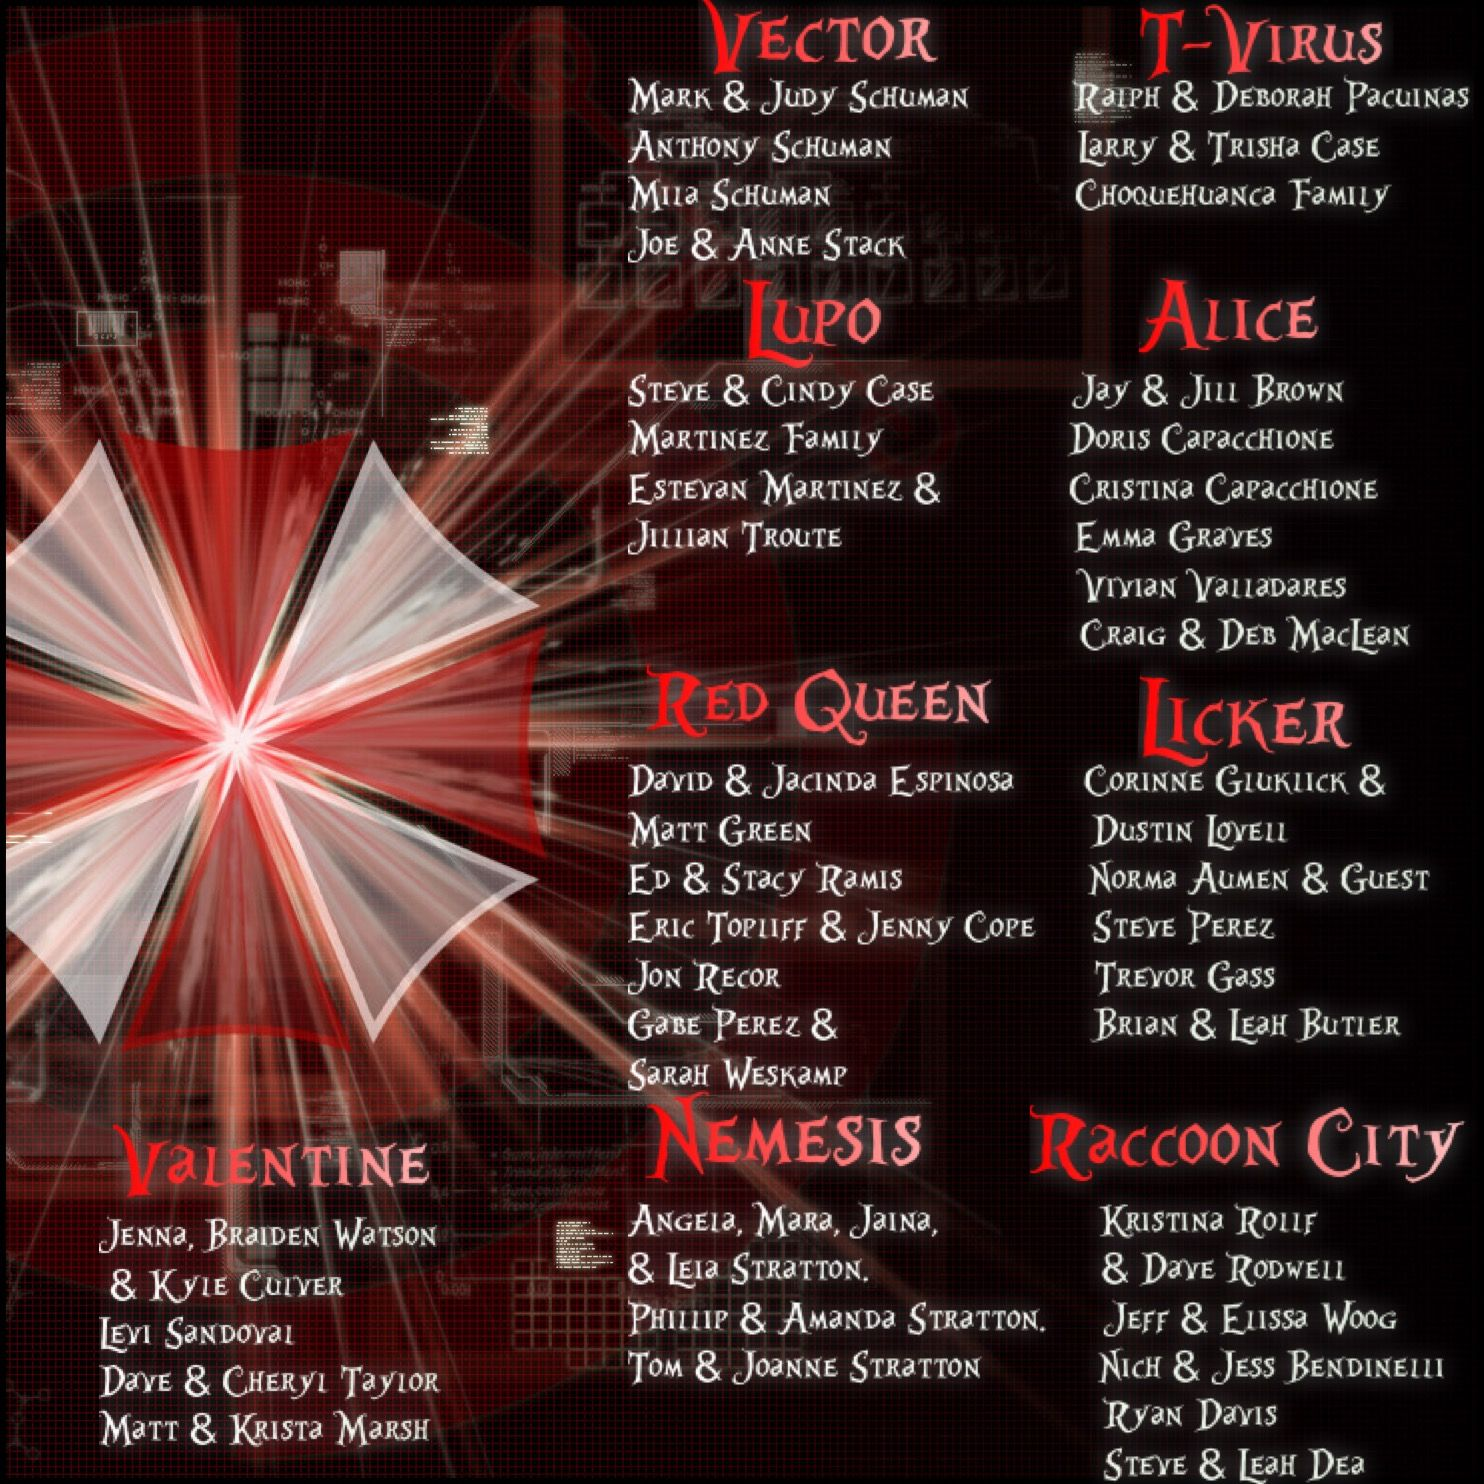 Umbrella Corp. Wedding Seating Chart Table names: Nemesis, Raccoon City, Alice, Red Queen